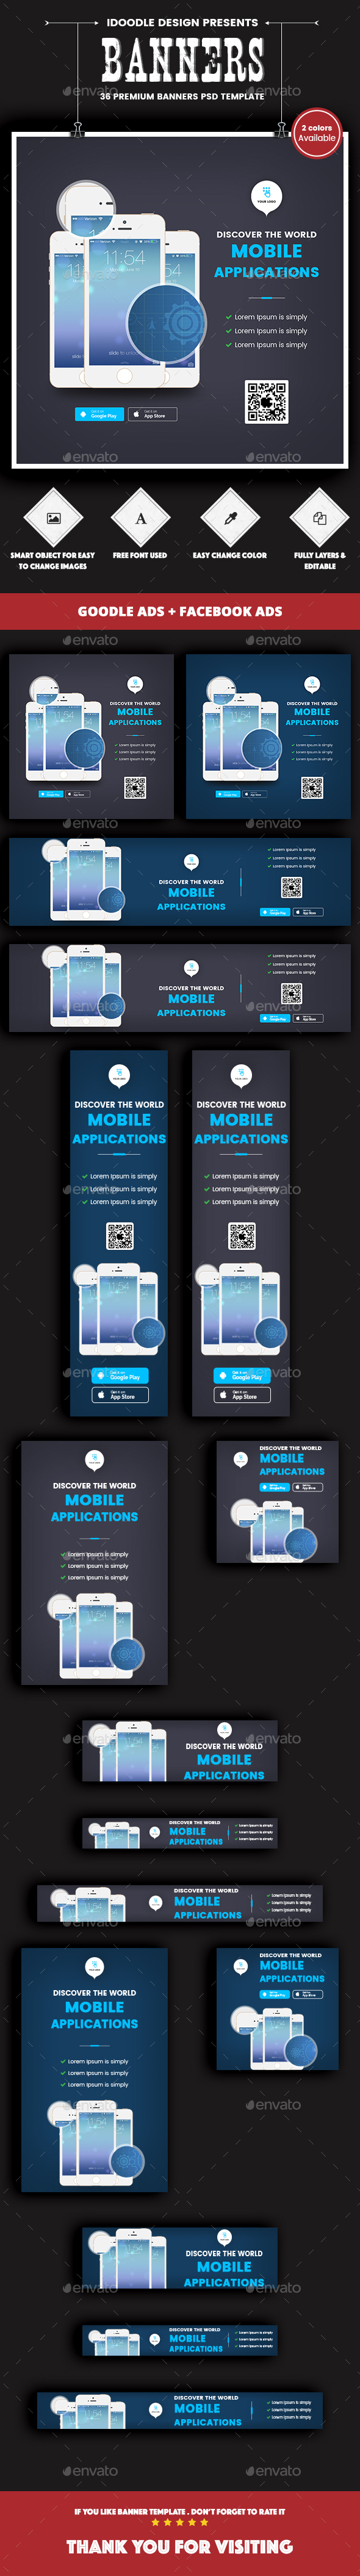 GraphicRiver Mobile Applications Banners Ads 2 Colors Available [36 PSD] 21008773